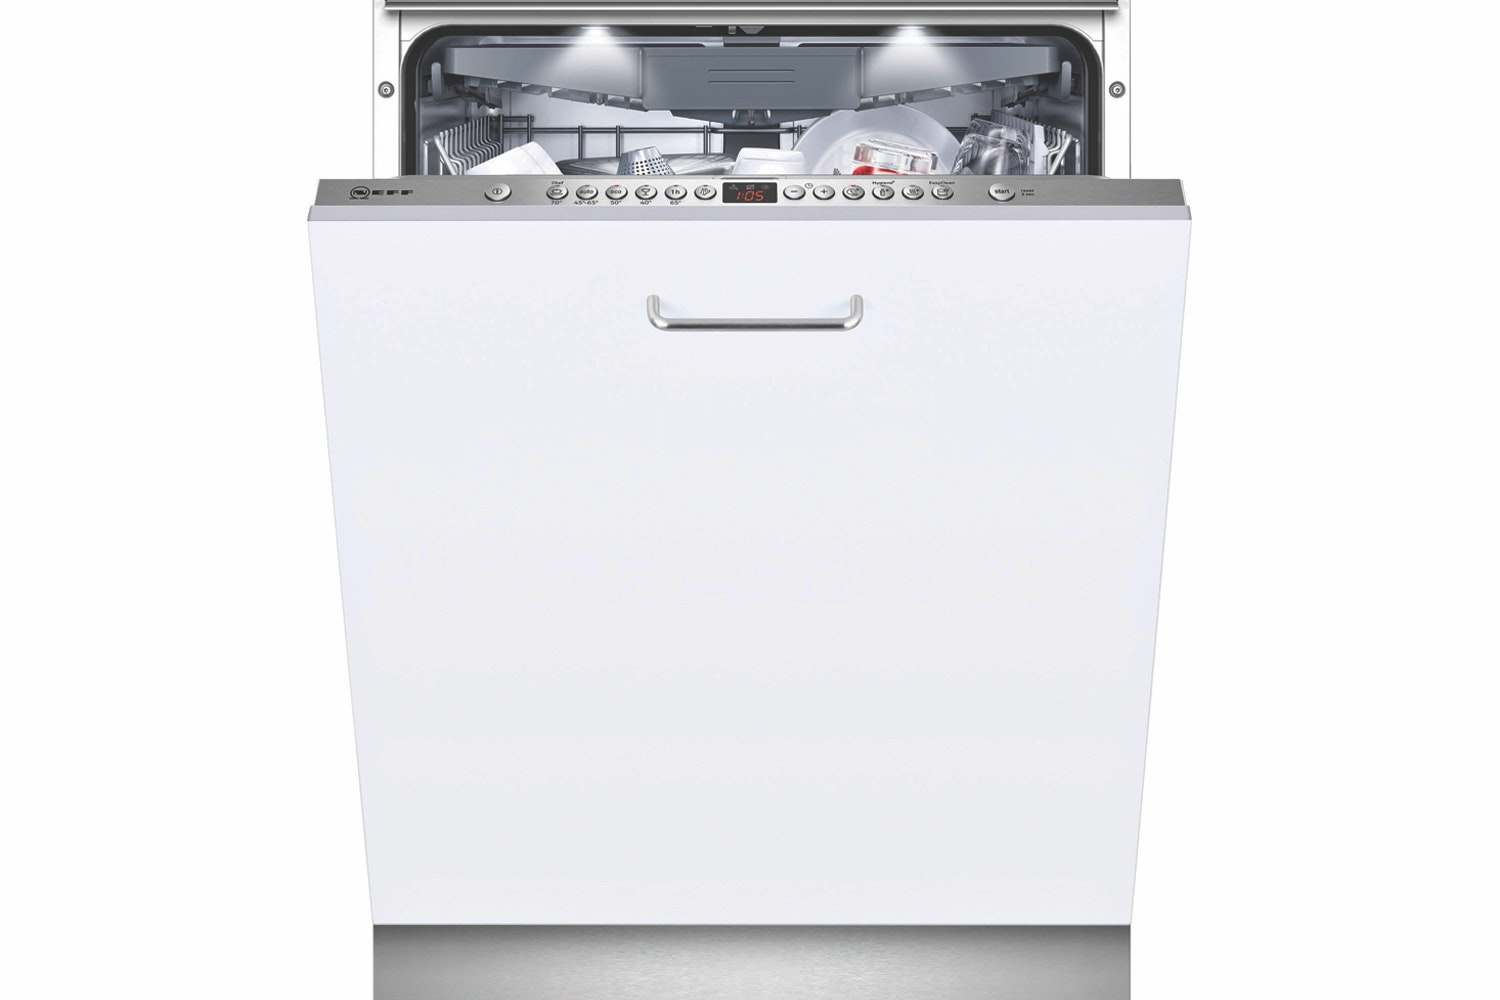 Neff Fully Integrated Dishwasher | 14 Place | S513M60X1G